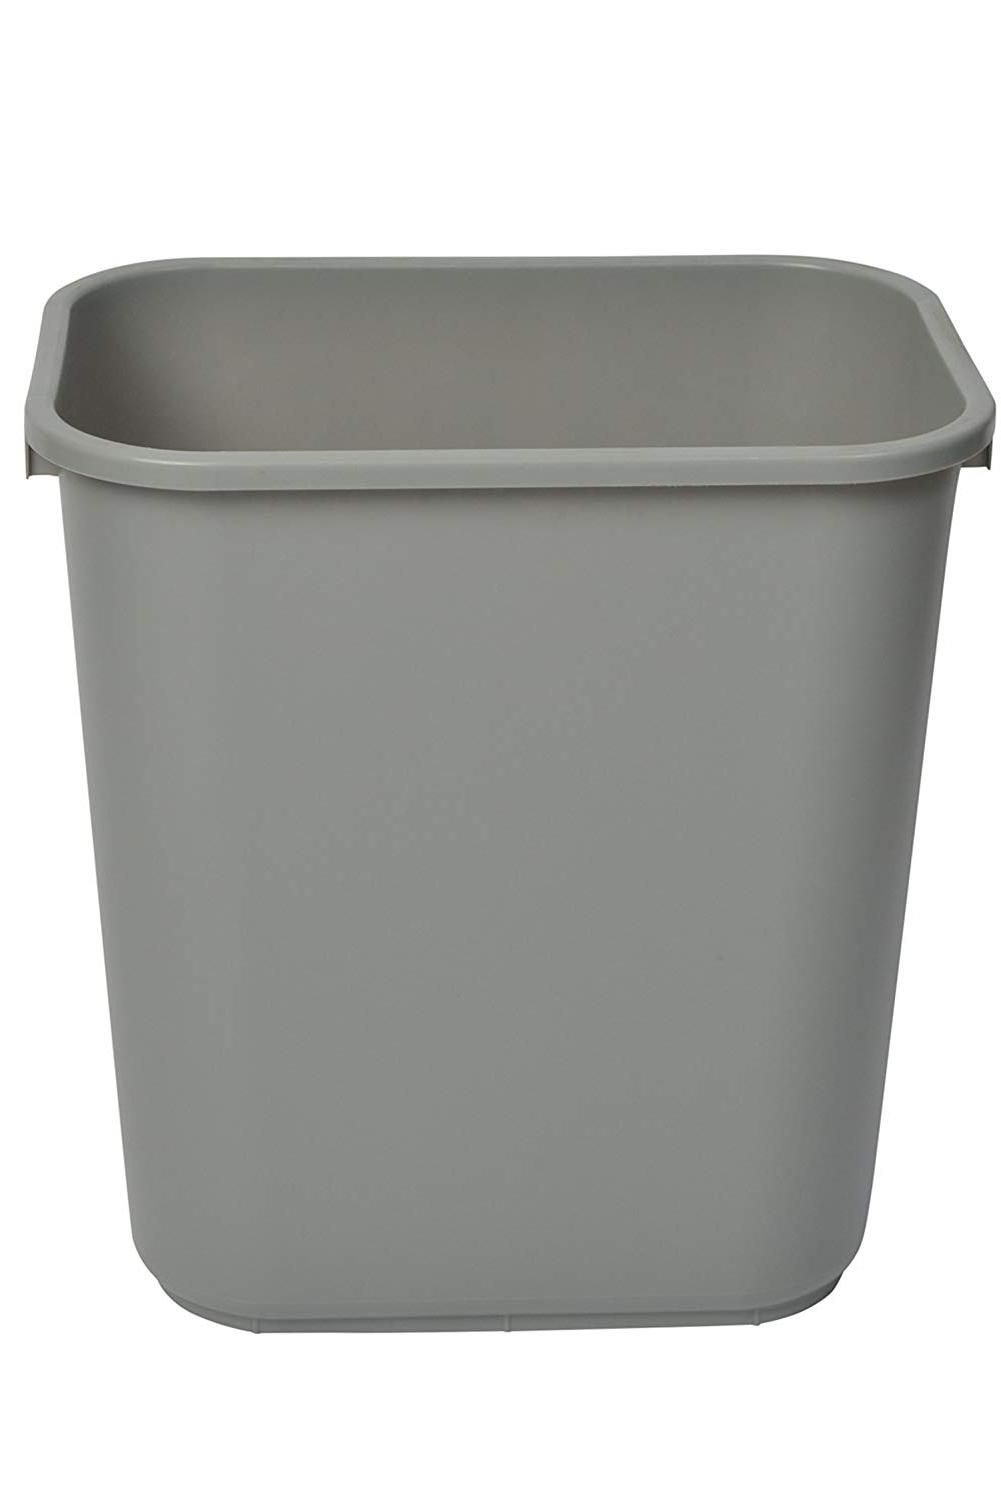 Janico 10 Gallon Waste Basket